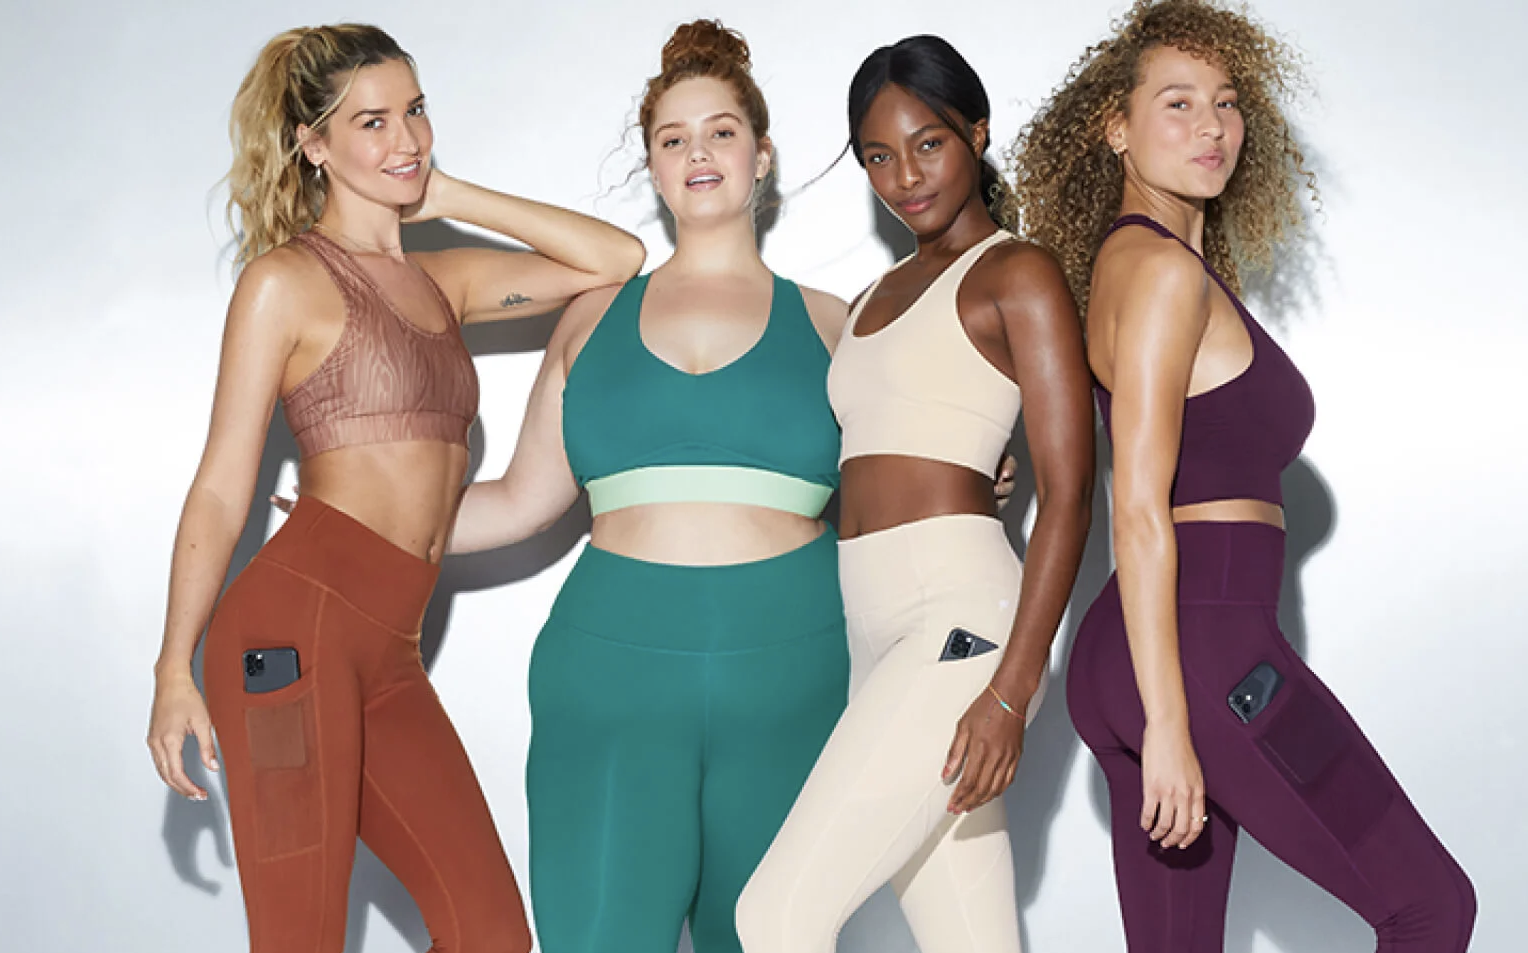 Fabletics is launching resale-as-a-service with Thredup to extend the life of its activewear garments.